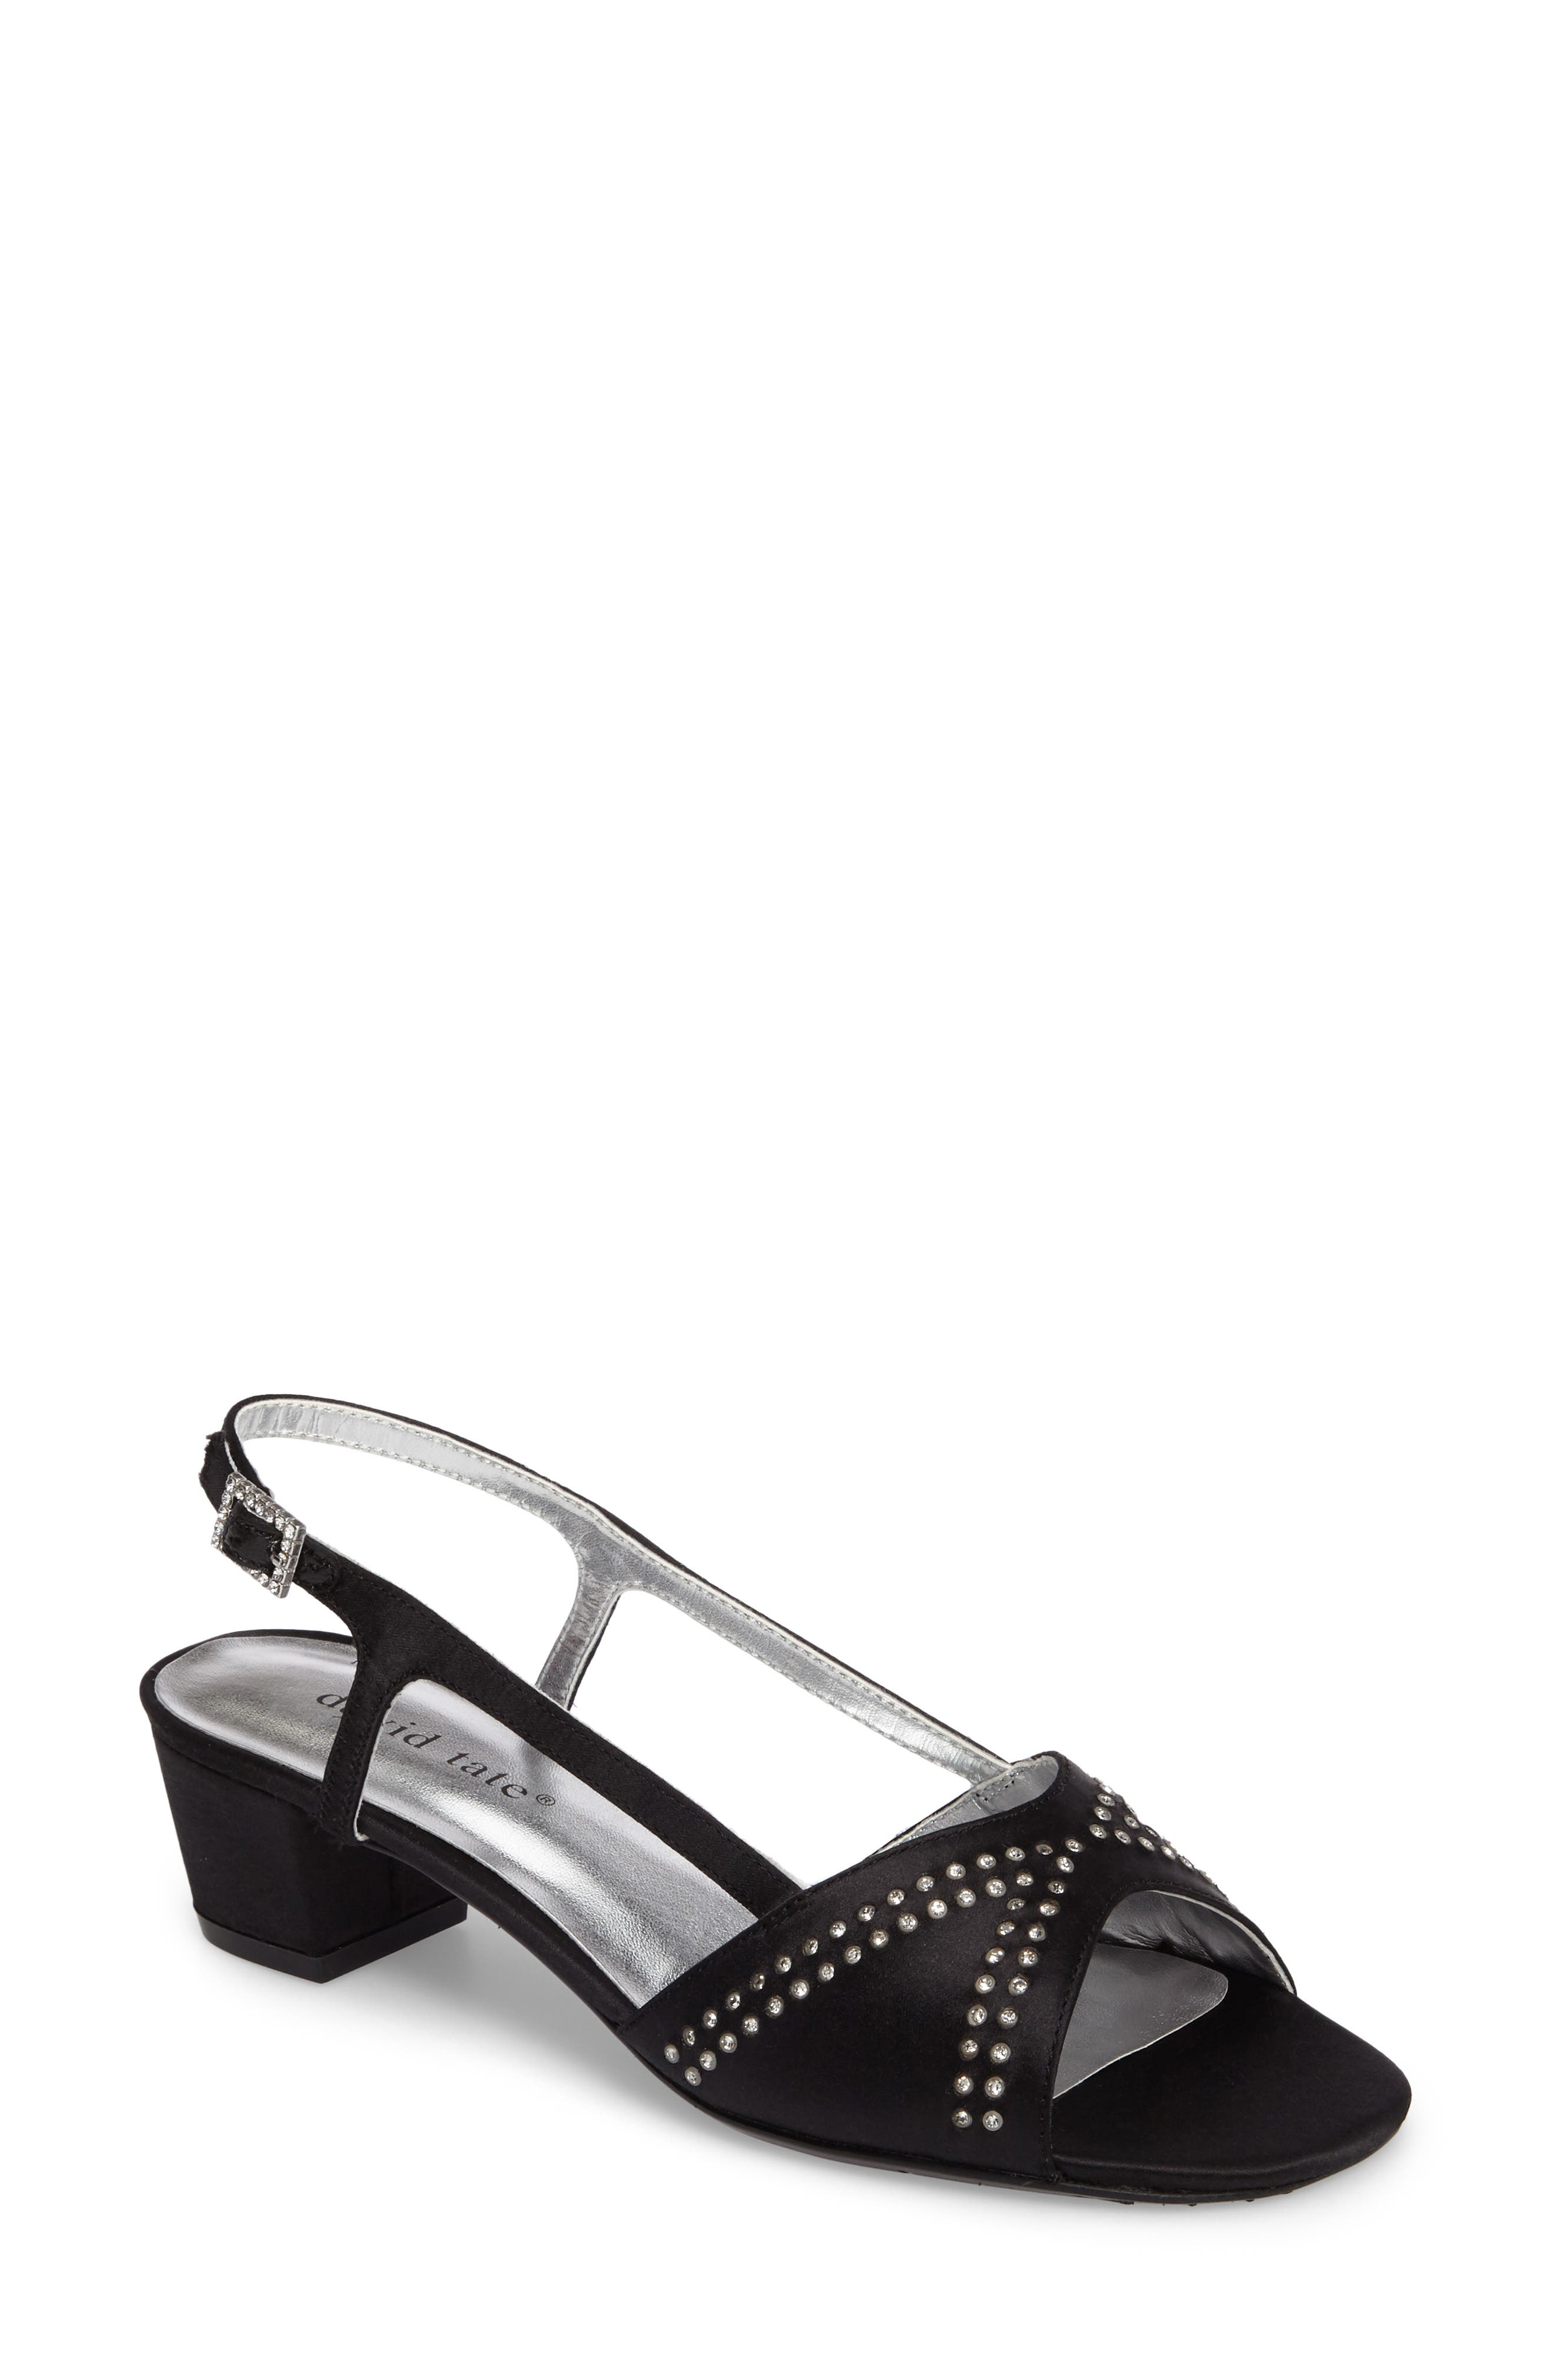 DAVID TATE, Wish Slingback Sandal, Main thumbnail 1, color, BLACK SATIN